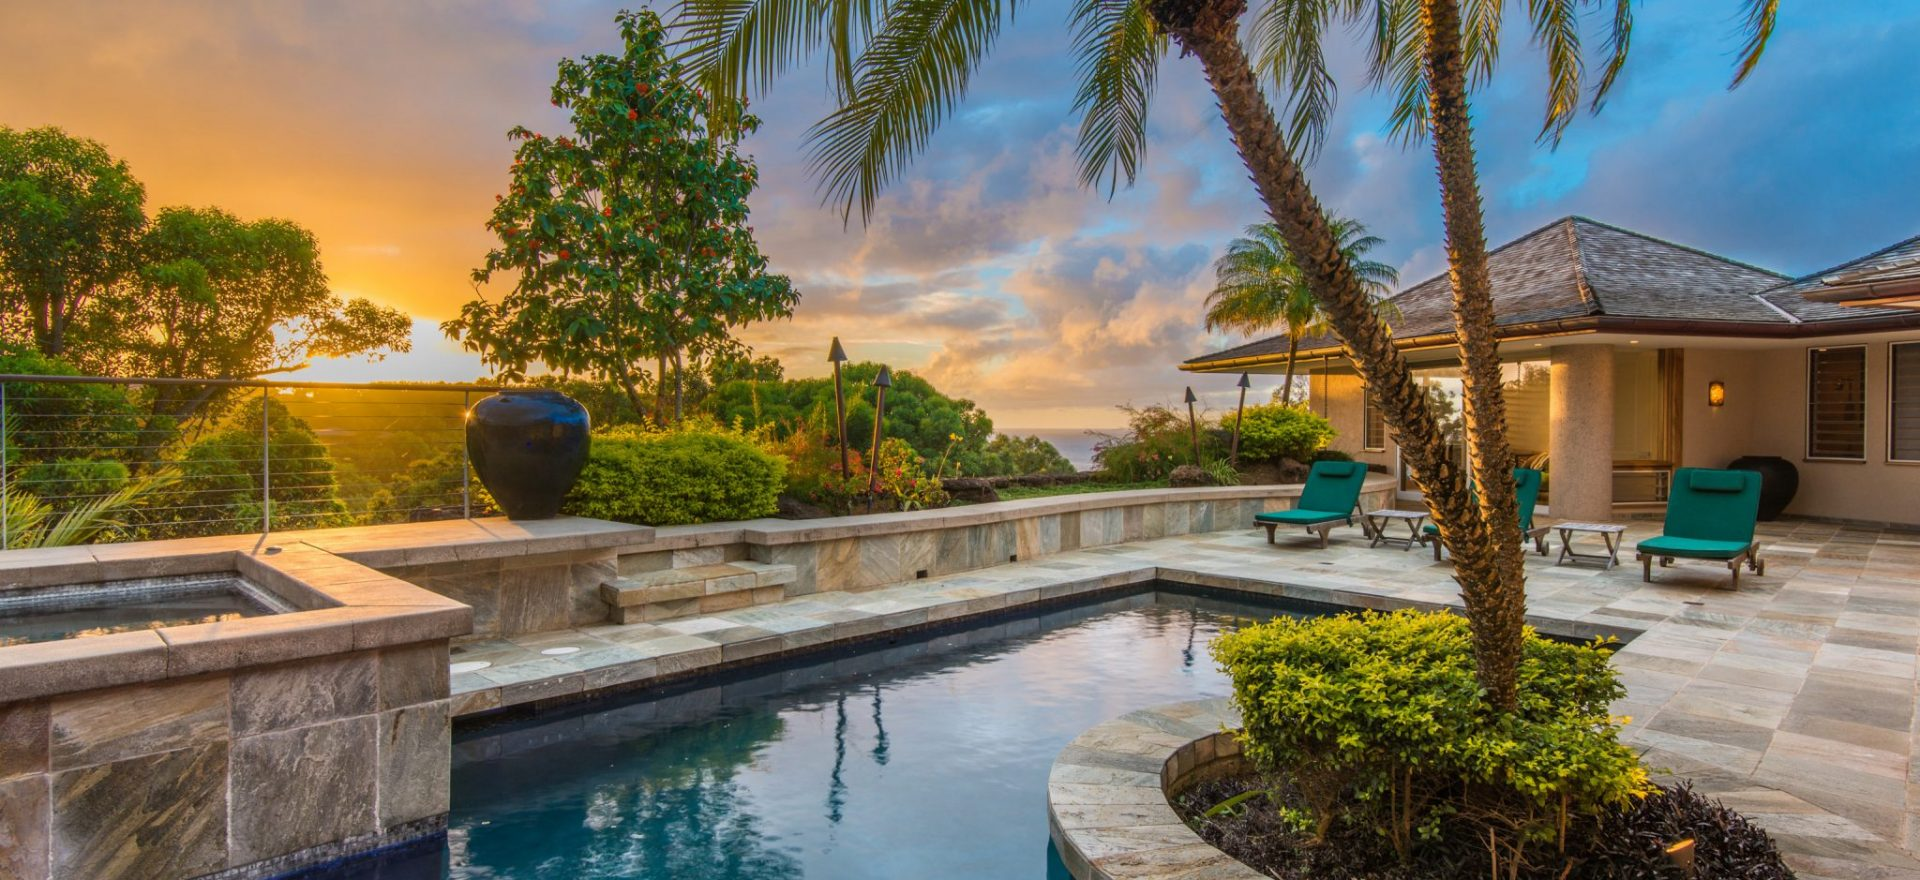 Blue Lapis - Back Patio and pool - Hawaii Vacation Home